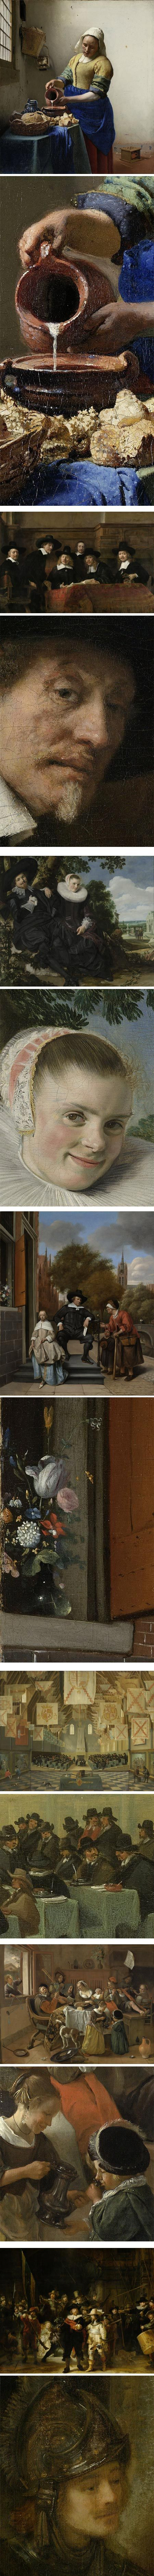 Rijksmuseum's selection for US President's visit:  Includes among other -  The Milkmaid by Vermeer c.1660, Portrait of a Couple, by Frans Hals, c. 1622, The Wardens of the Amsterdam Drapers' Guild, Known as 'The Syndics', by Rembrandt c. 1662, Night Watch also by Rembrandt c.1642.